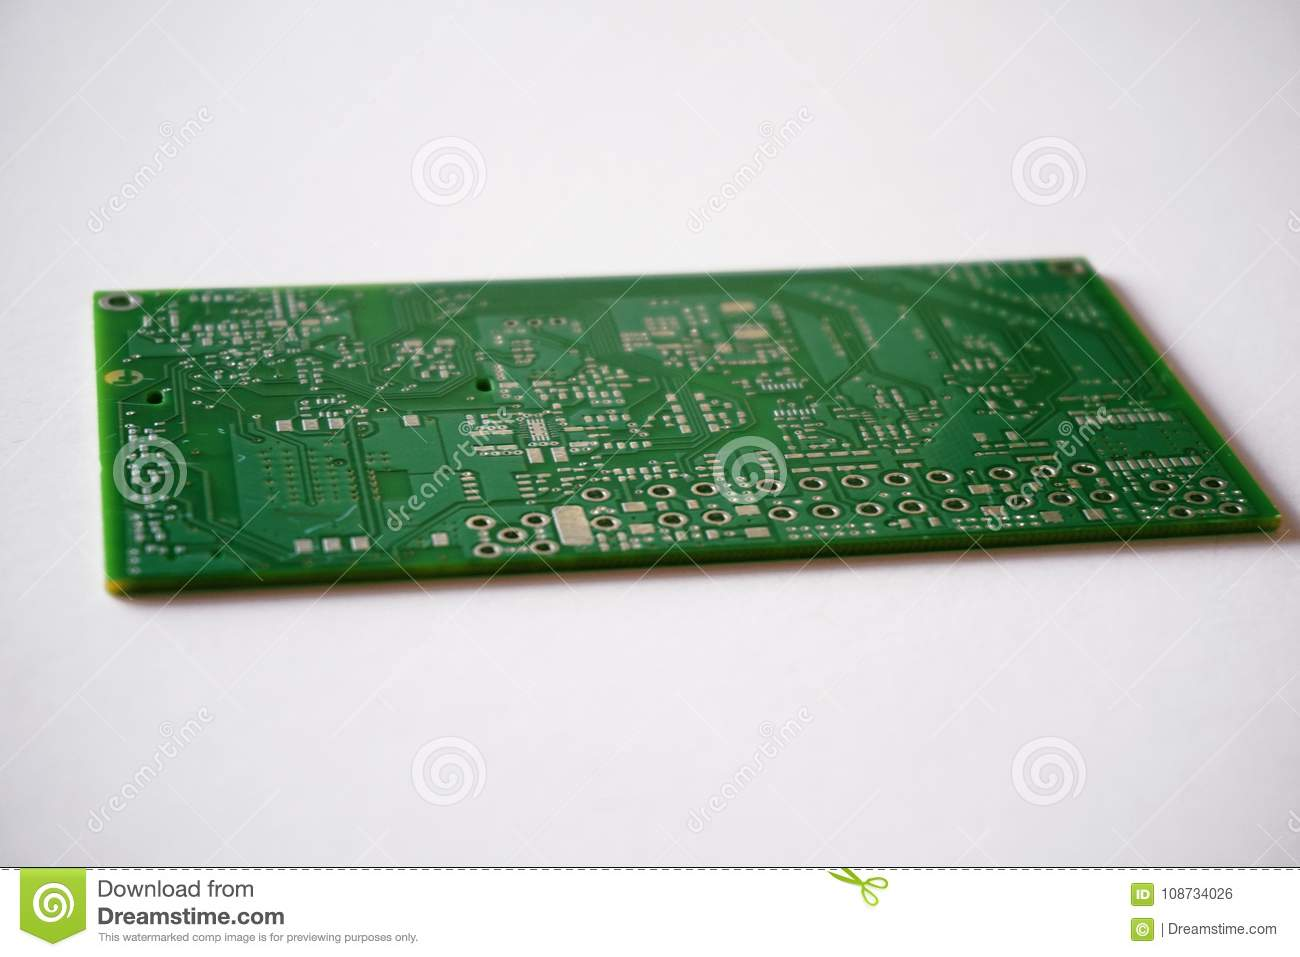 Printed Circuit Board Pcb Stock Photo Image Of Detail 108734026 As Before We Can Copy The Onto A And On White Background